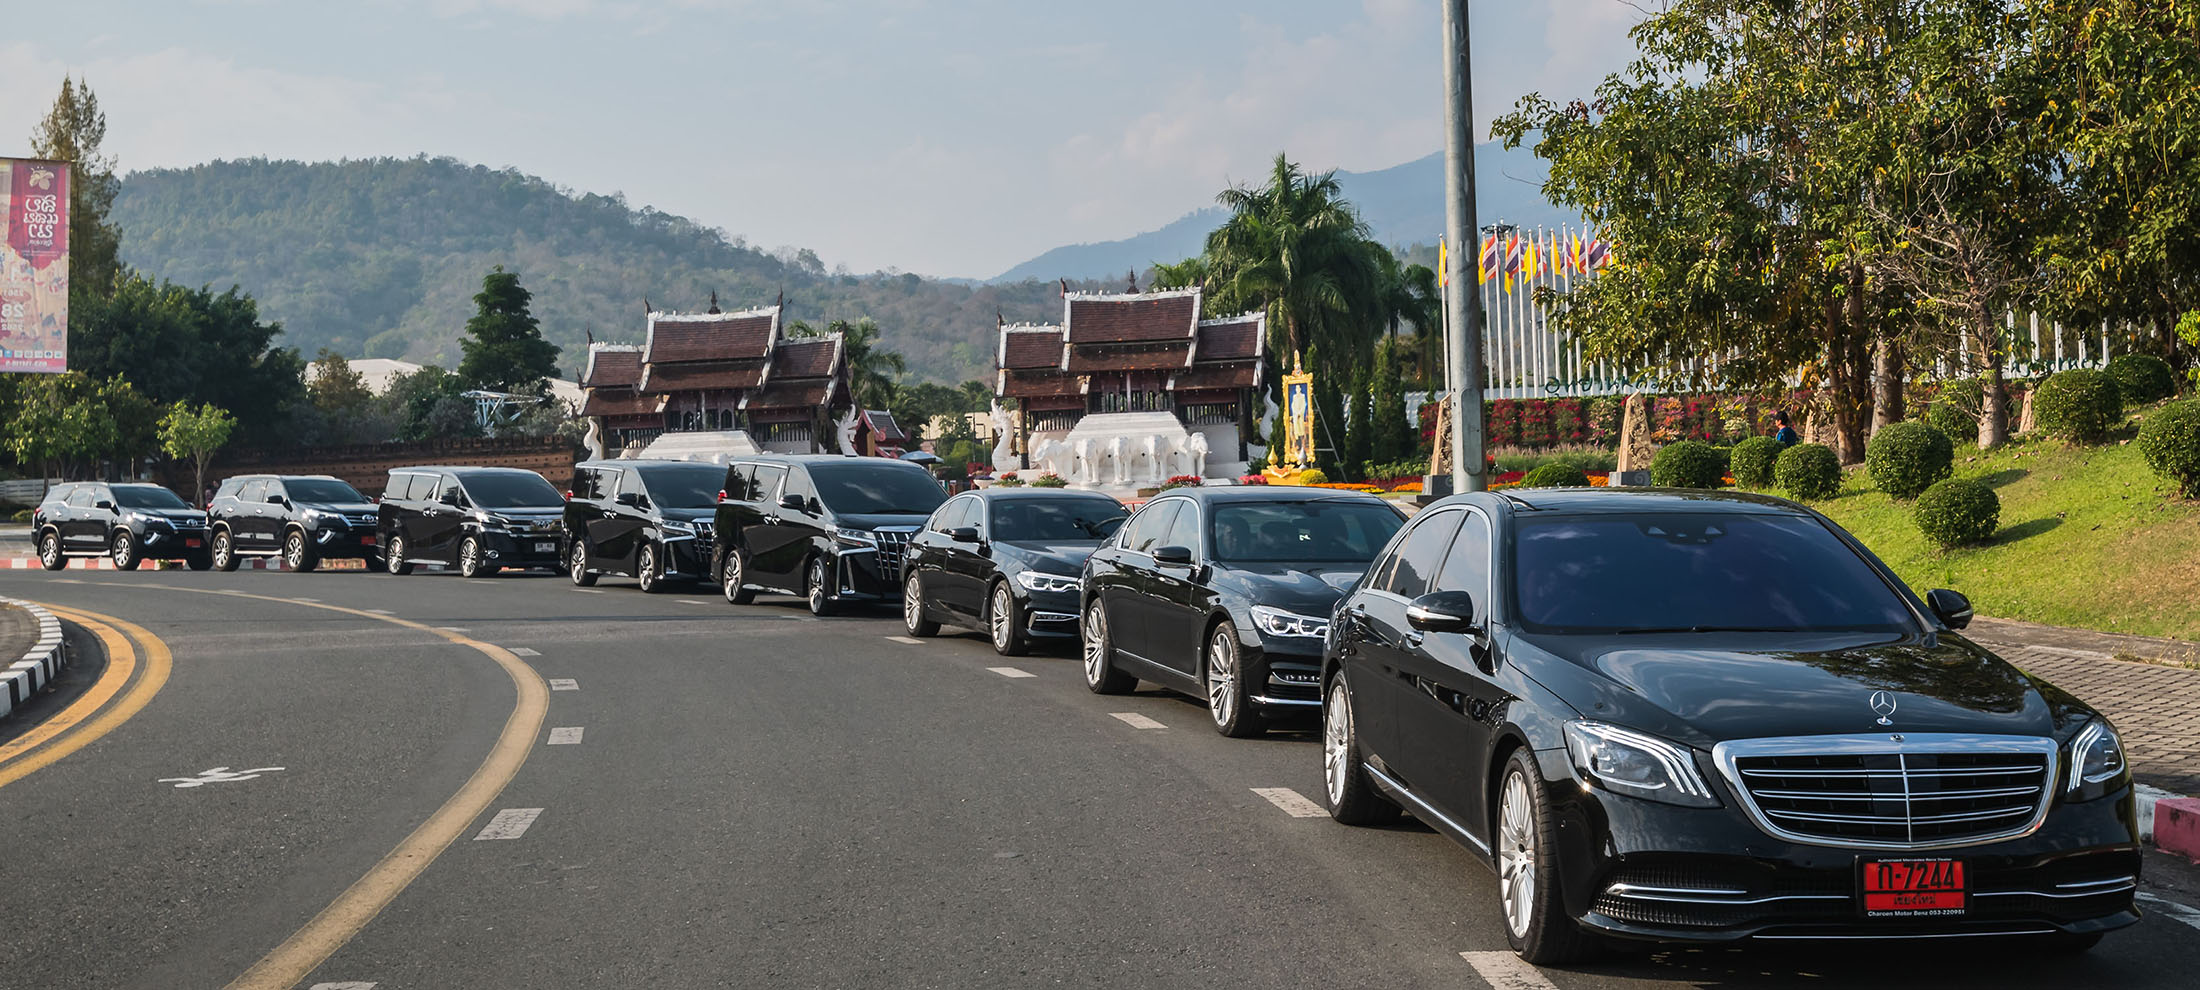 brand new car for rental by chiang mai alphard_chinese